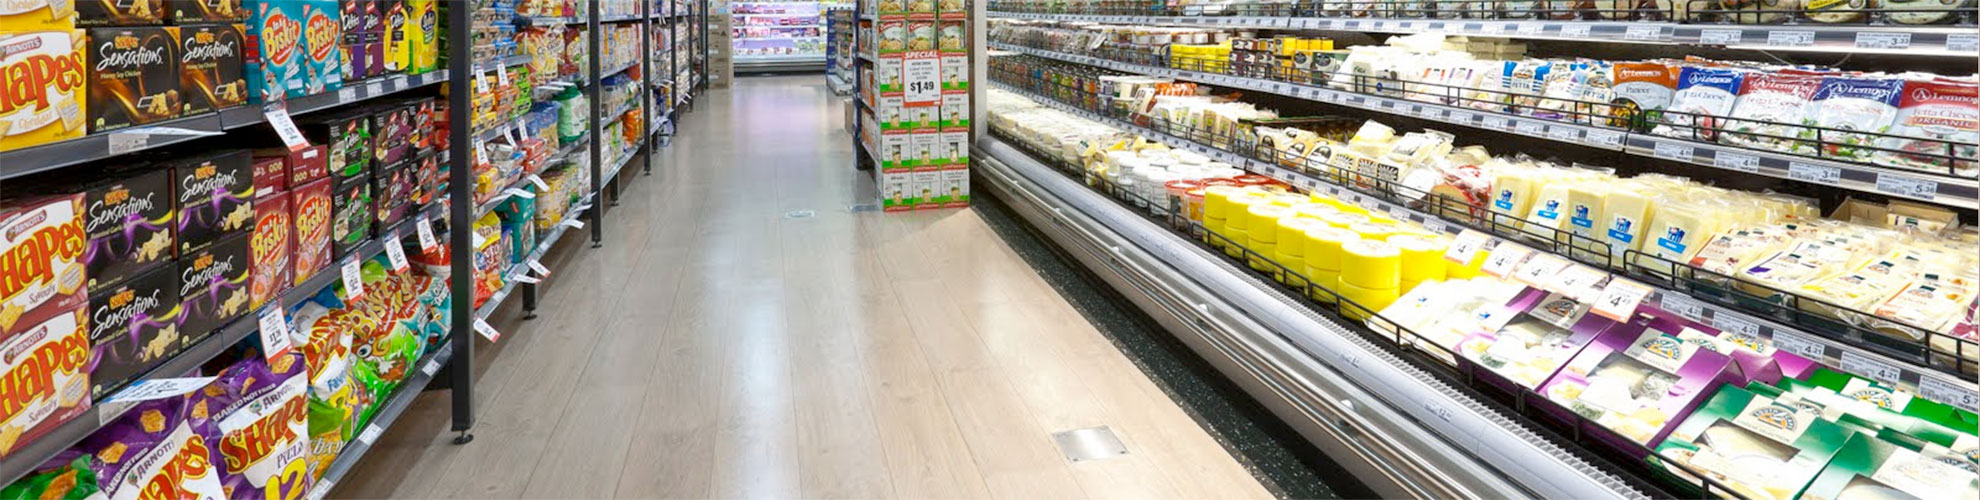 supermarket-cleaning